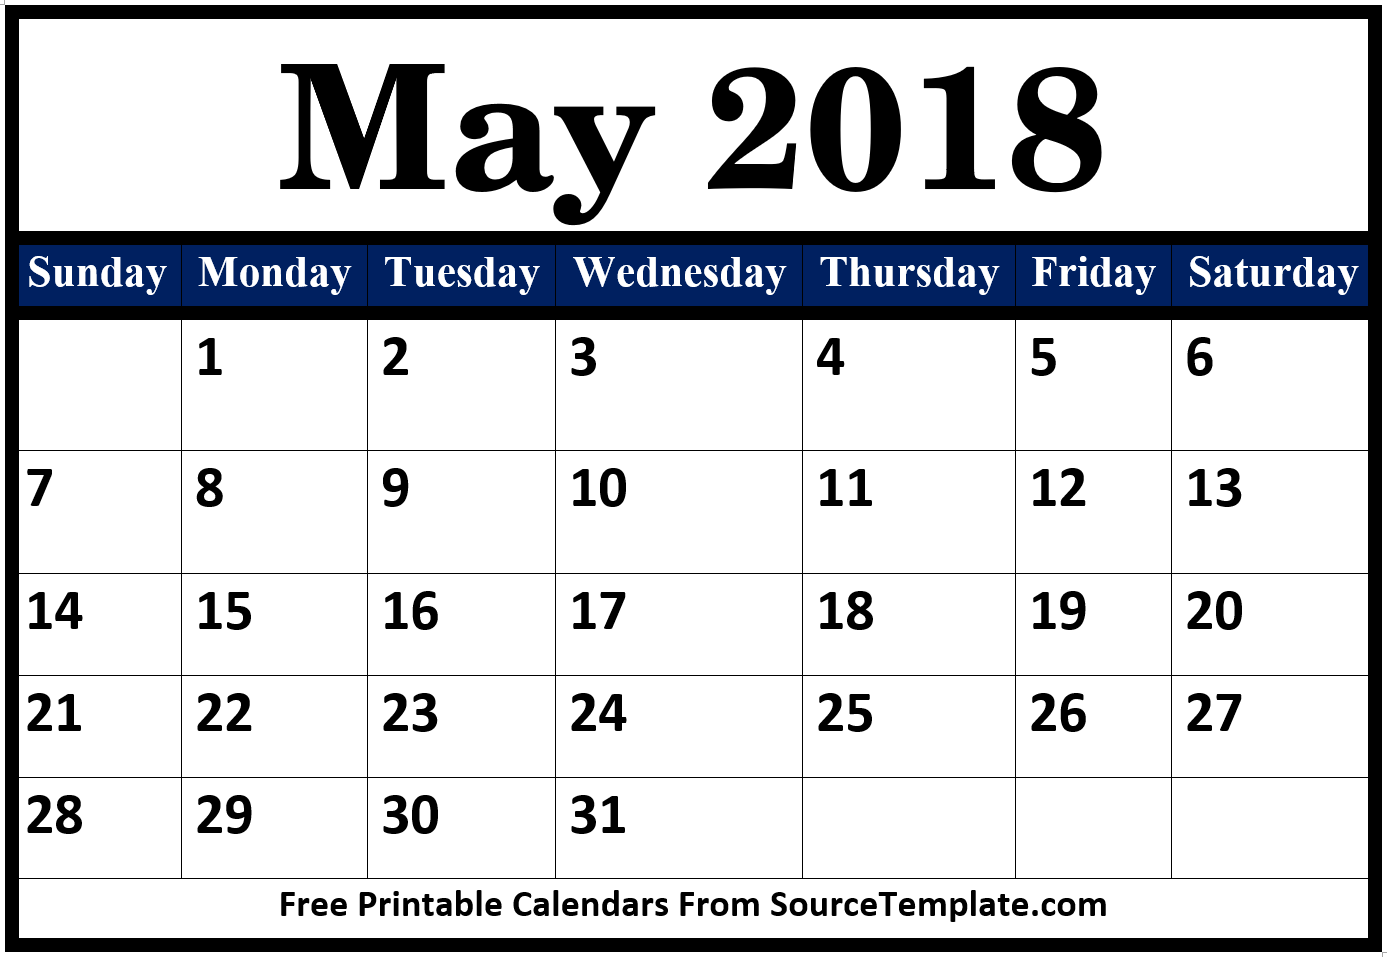 Printable Calendar May 2018 USA